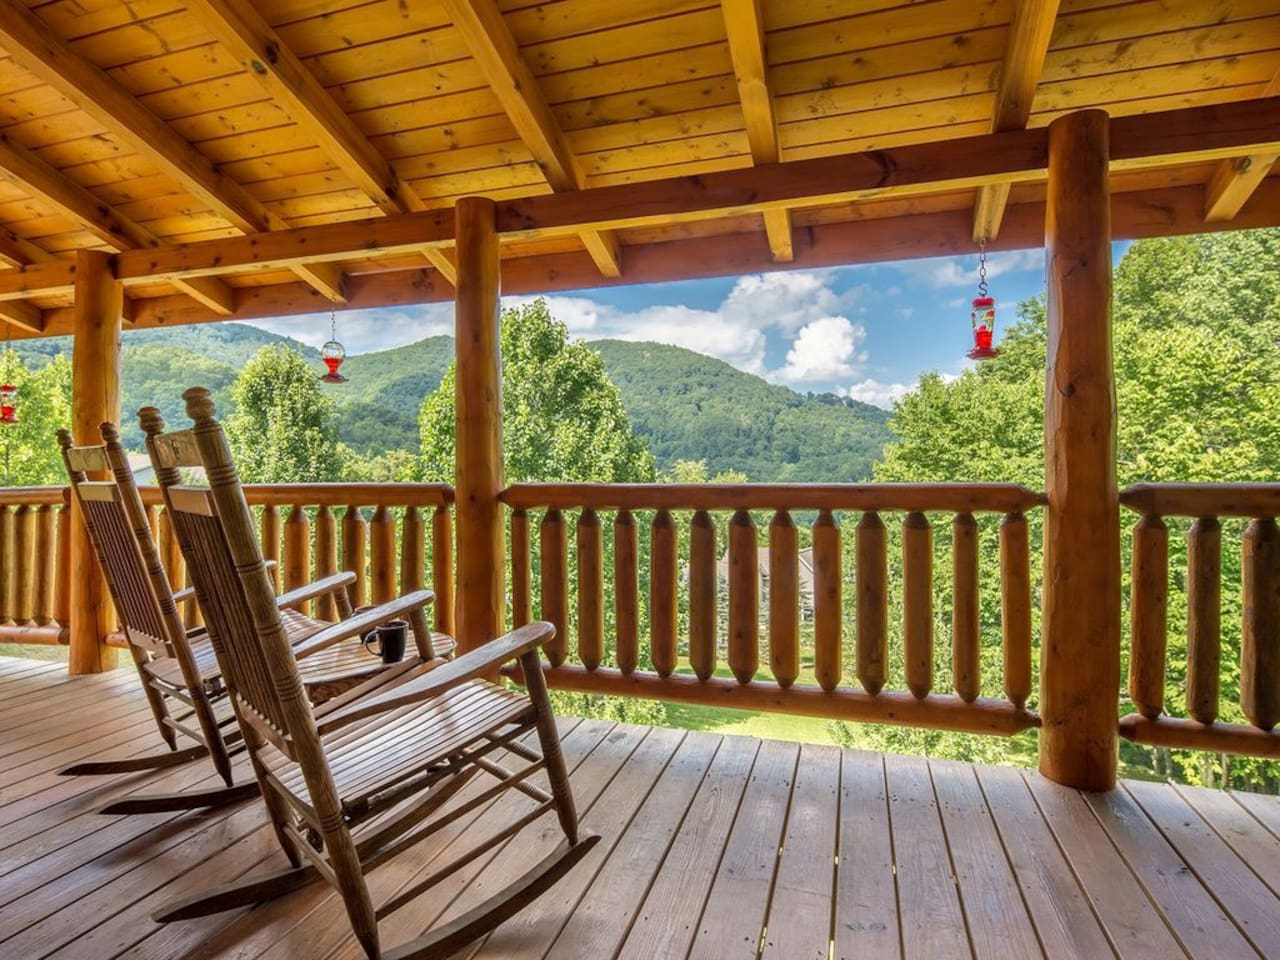 Relax, enjoy the view and breath the fresh mountain air at 4000 feet.